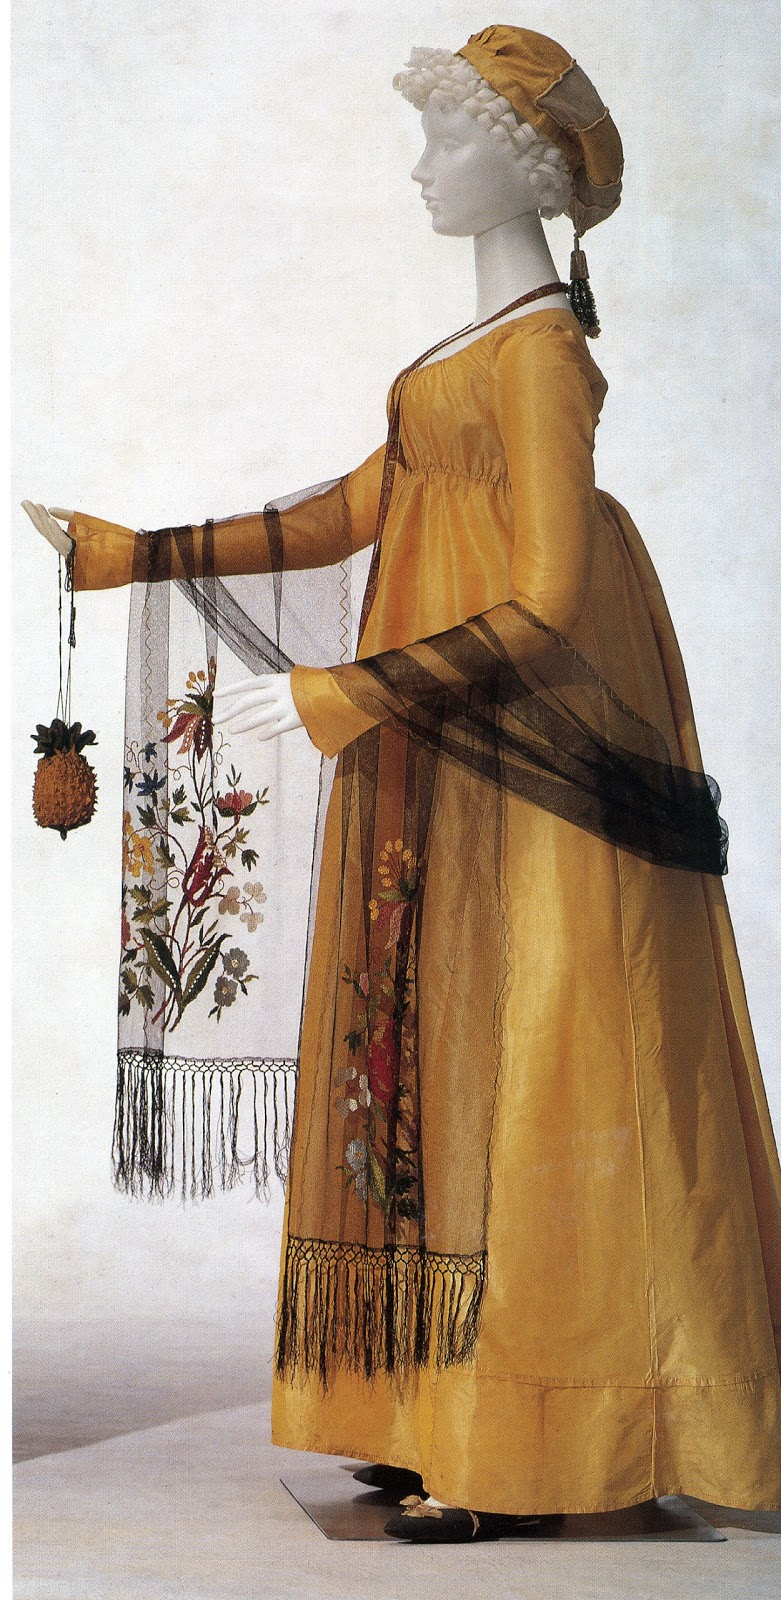 ... History Girls: Perfect Pineapple: A Knitted Regency Reticule, c 1800